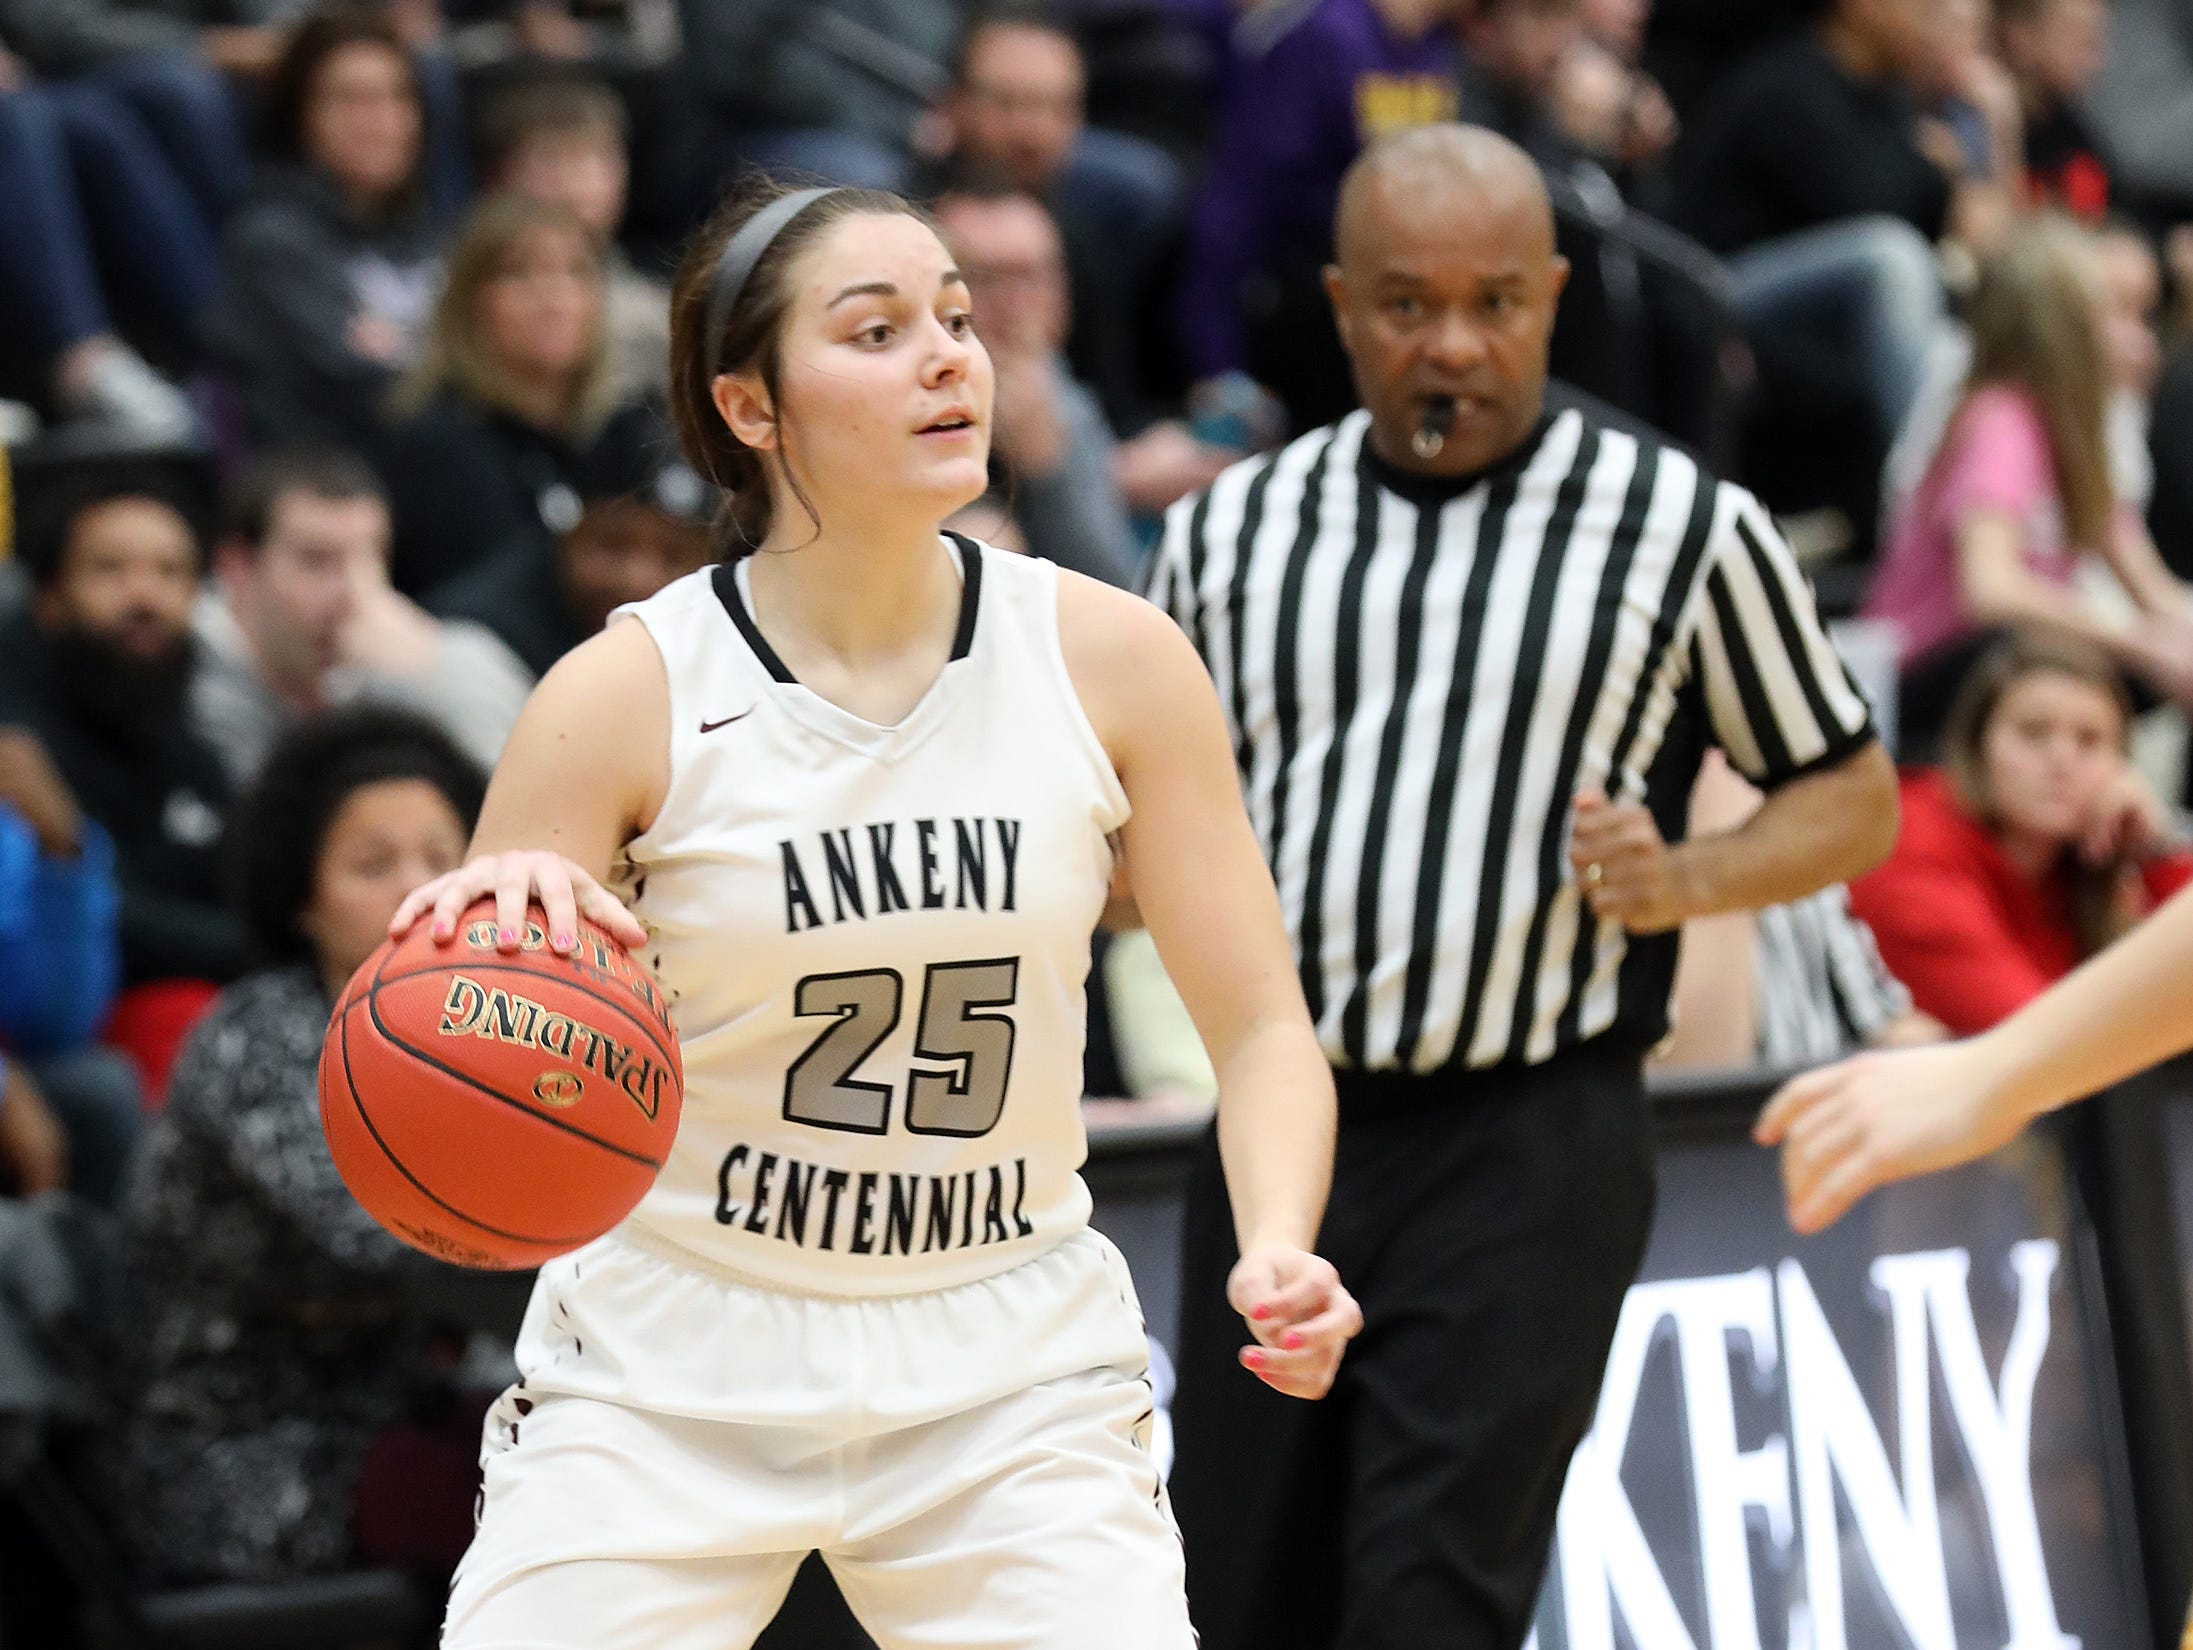 Ankeny Centennial freshman Cleao Murray looks to pass as the Johnston Dragons compete against the Ankeny Centennial Jaguars in high school girls basketball on Friday, Jan. 4, 2019 at Ankeny Centennial High School.